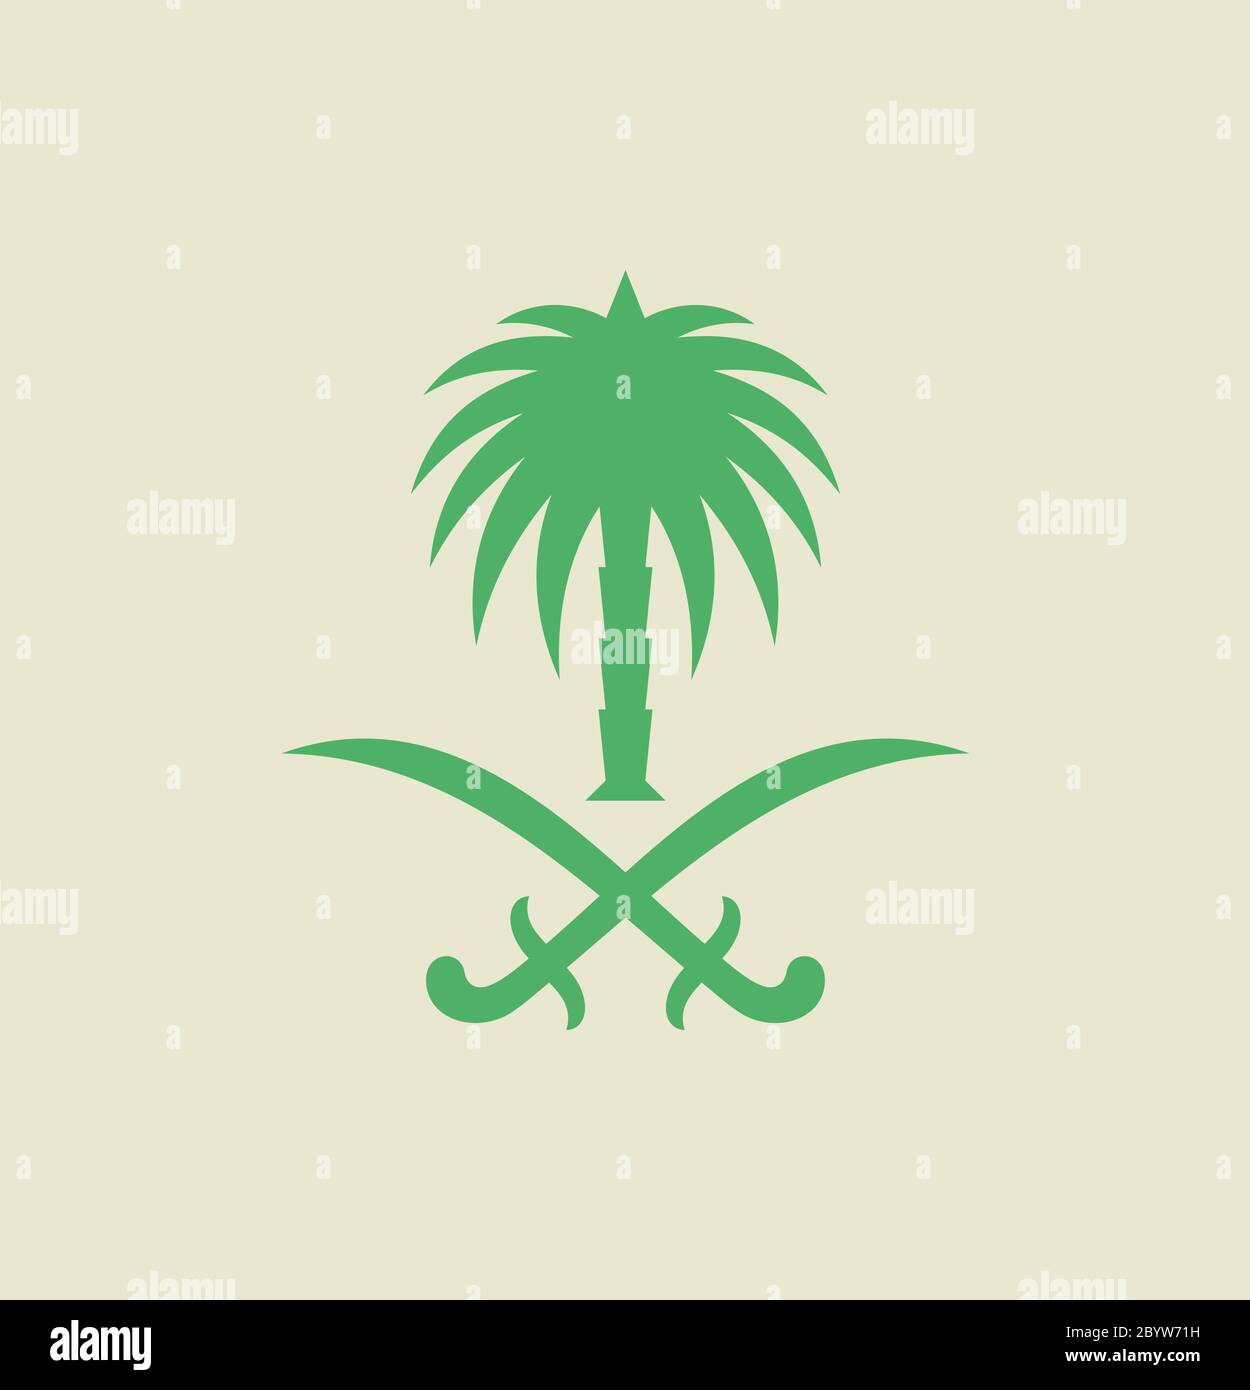 Saudi Arabian Palm Tree Logo Saudi Arabian Cultural Identity Stock Vector Image Art Alamy View our portfolio of palm tree logos. https www alamy com saudi arabian palm tree logo saudi arabian cultural identity image361357405 html